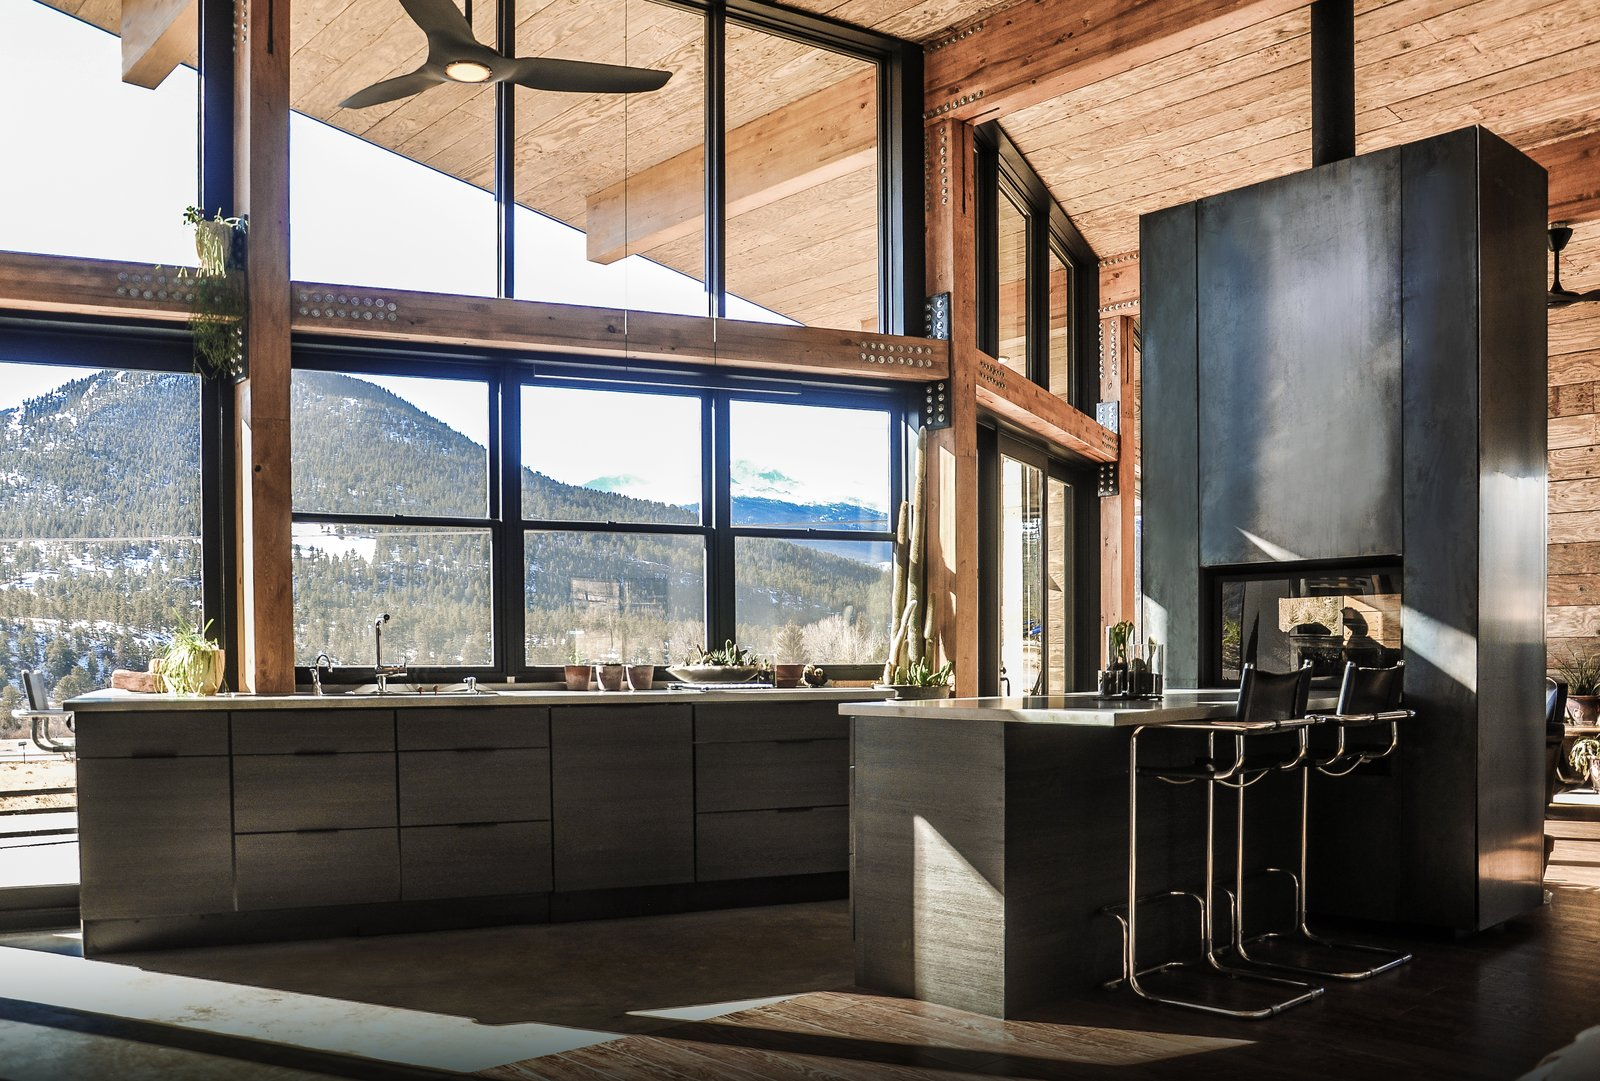 Kitchen, Refrigerator, Microwave, Cooktops, Wood, Dishwasher, Ceiling, Metal, Dark Hardwood, Concrete, Concrete, Range, Wall Oven, Pendant, Concrete, Accent, and Drop In The warm industrial kitchen celebrates views of Rocky Mountain National Park beyond. A see-through, steel fireplace becomes a glowing beacon that warms the kitchen and living room at the heart of the home.   Best Kitchen Concrete Cooktops Ceiling Microwave Accent Photos from Estes Park Residence